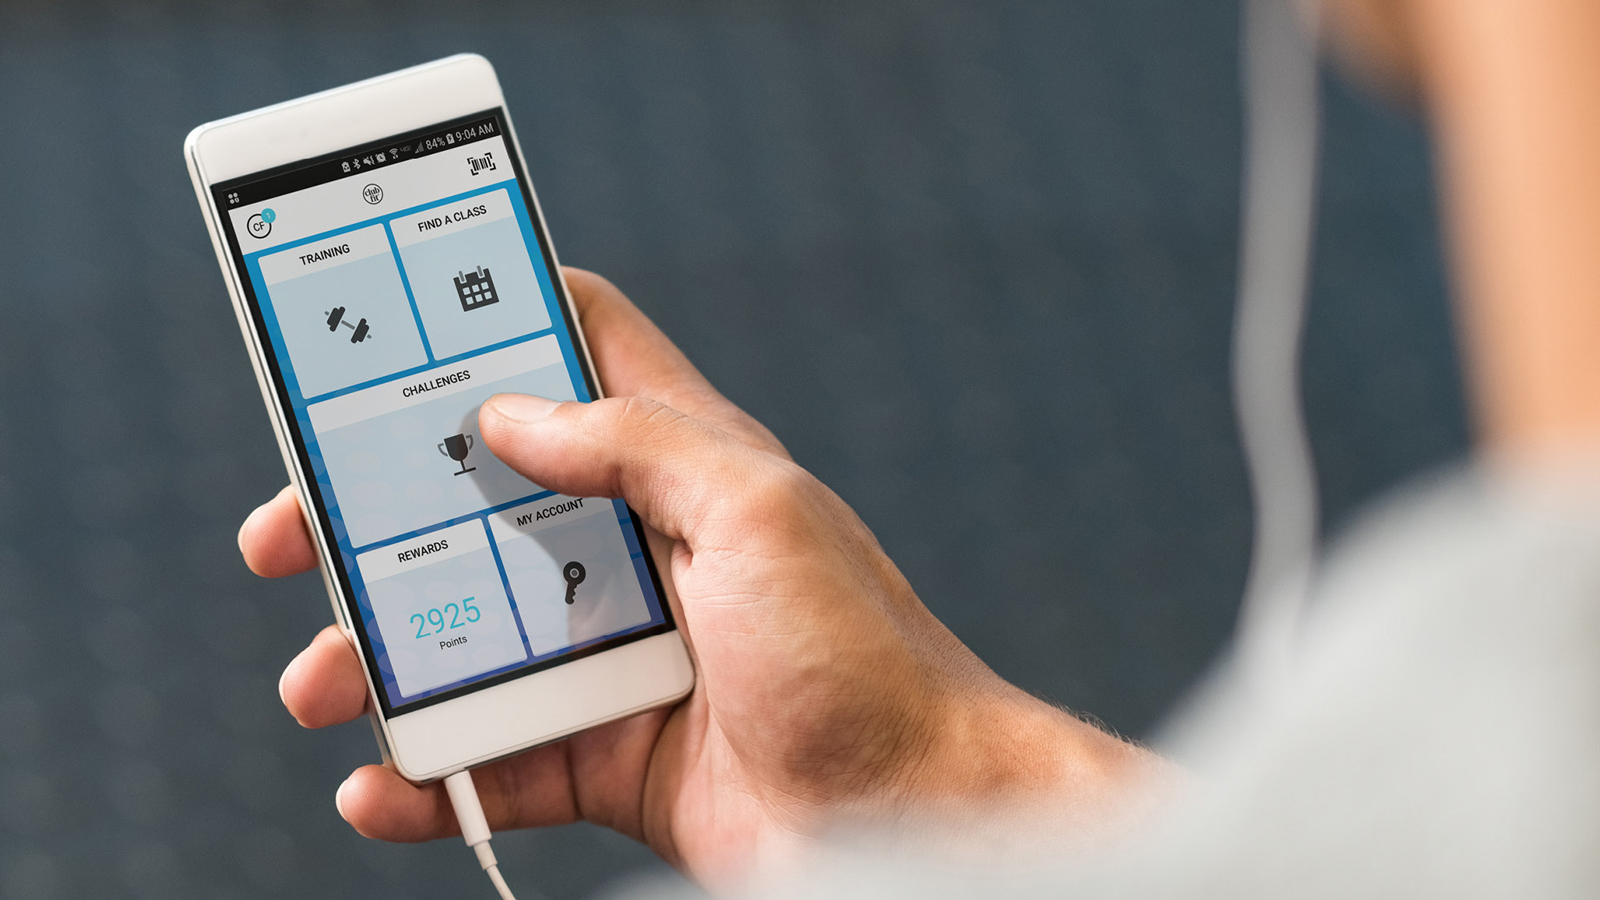 Man in gym using Club Fit app on handheld device